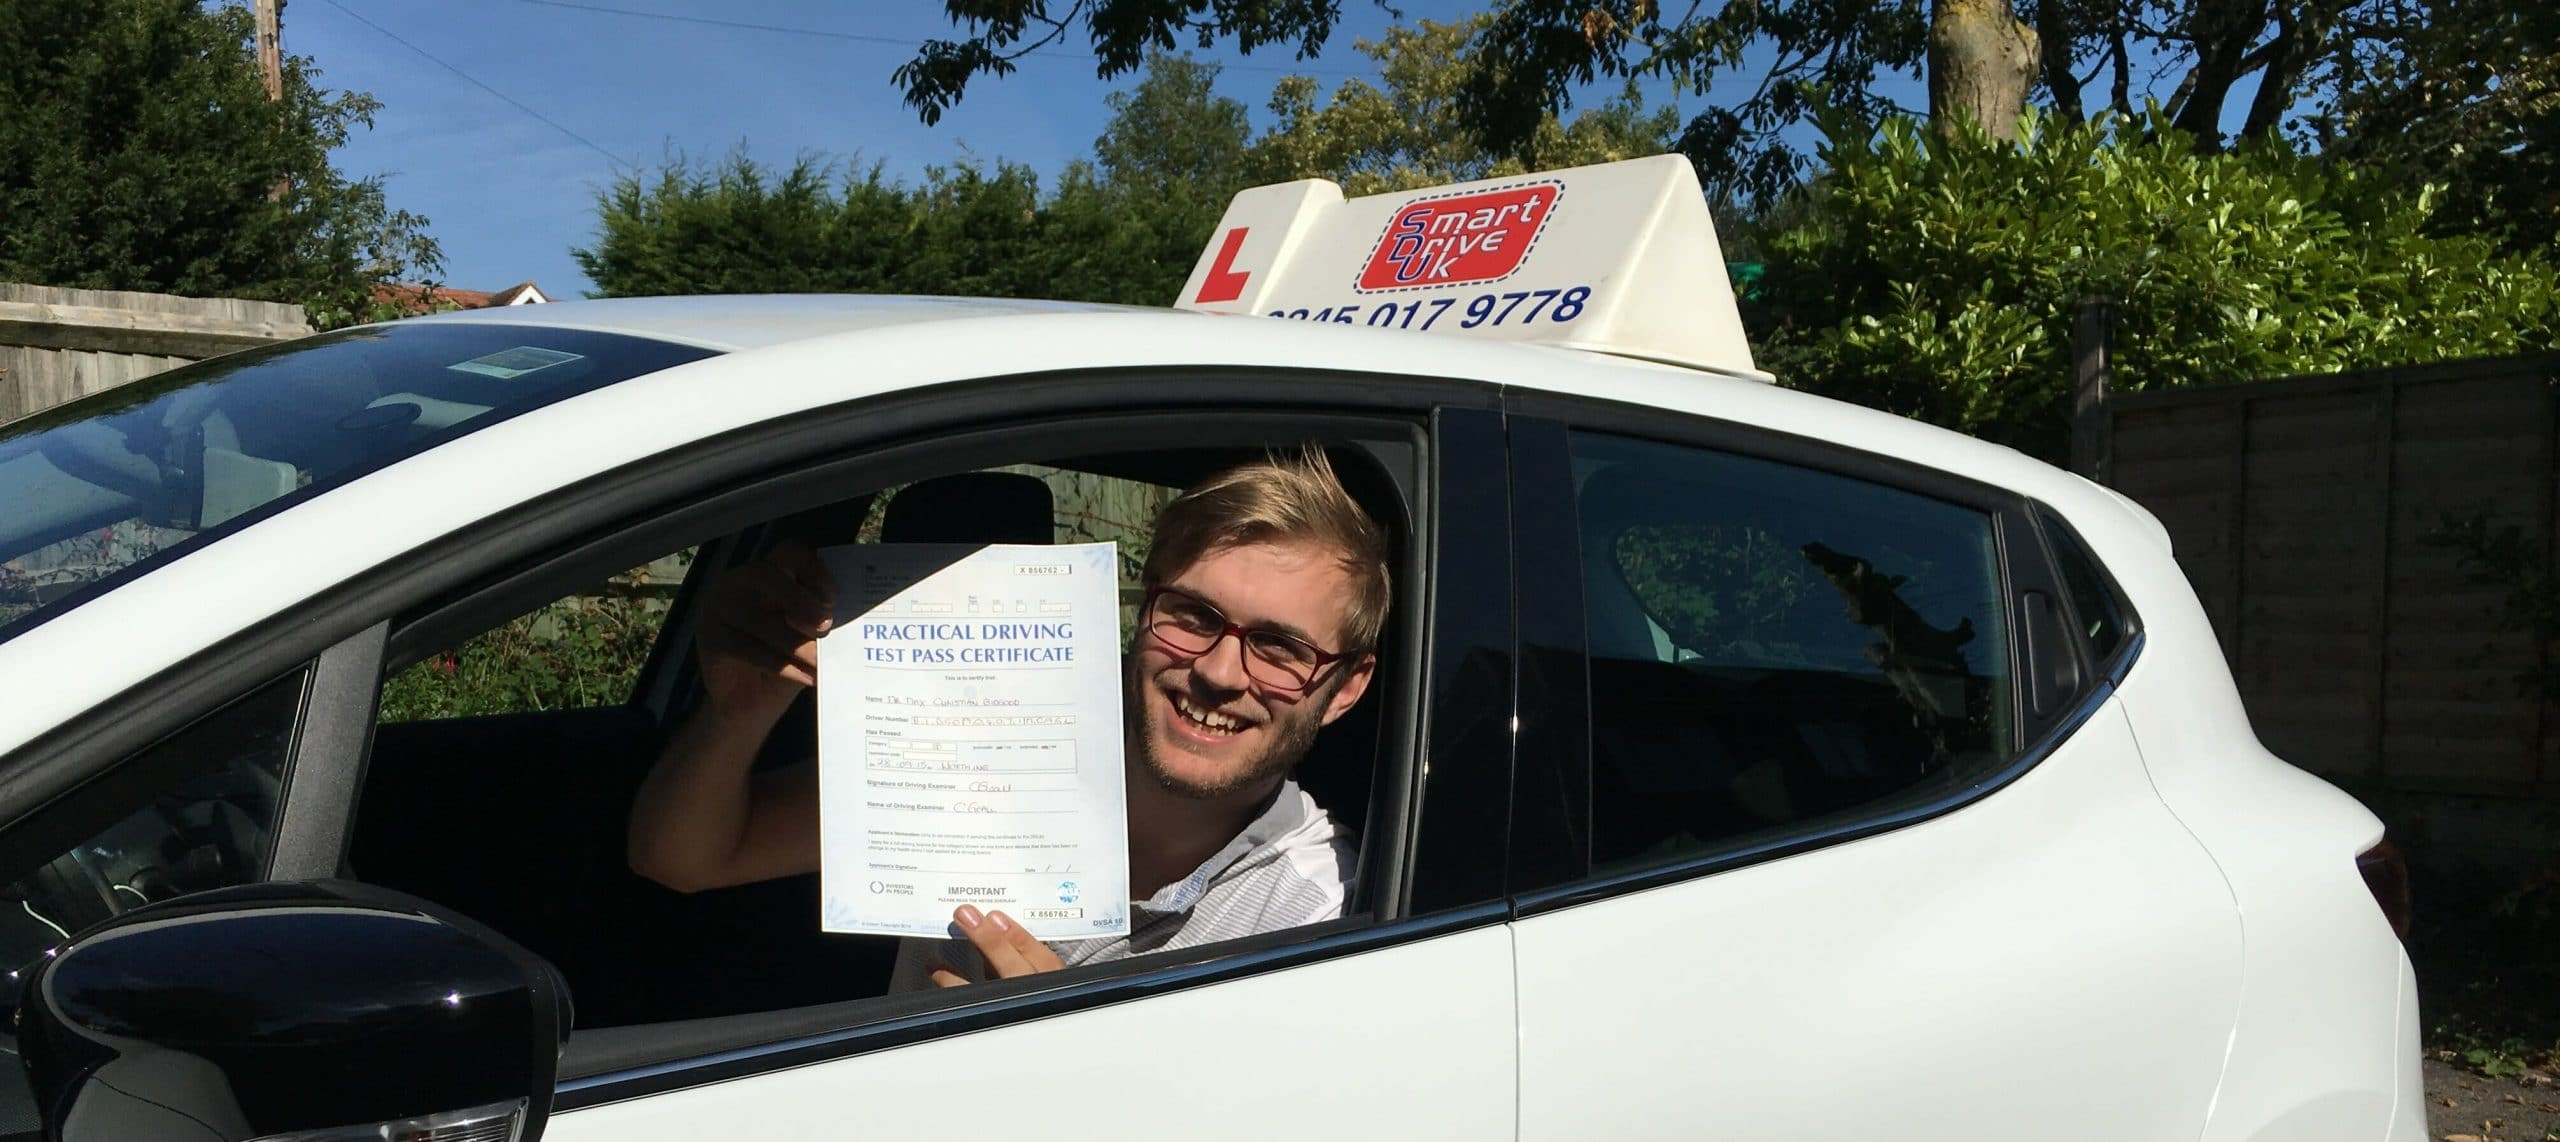 Congratulations to Max from Worthing